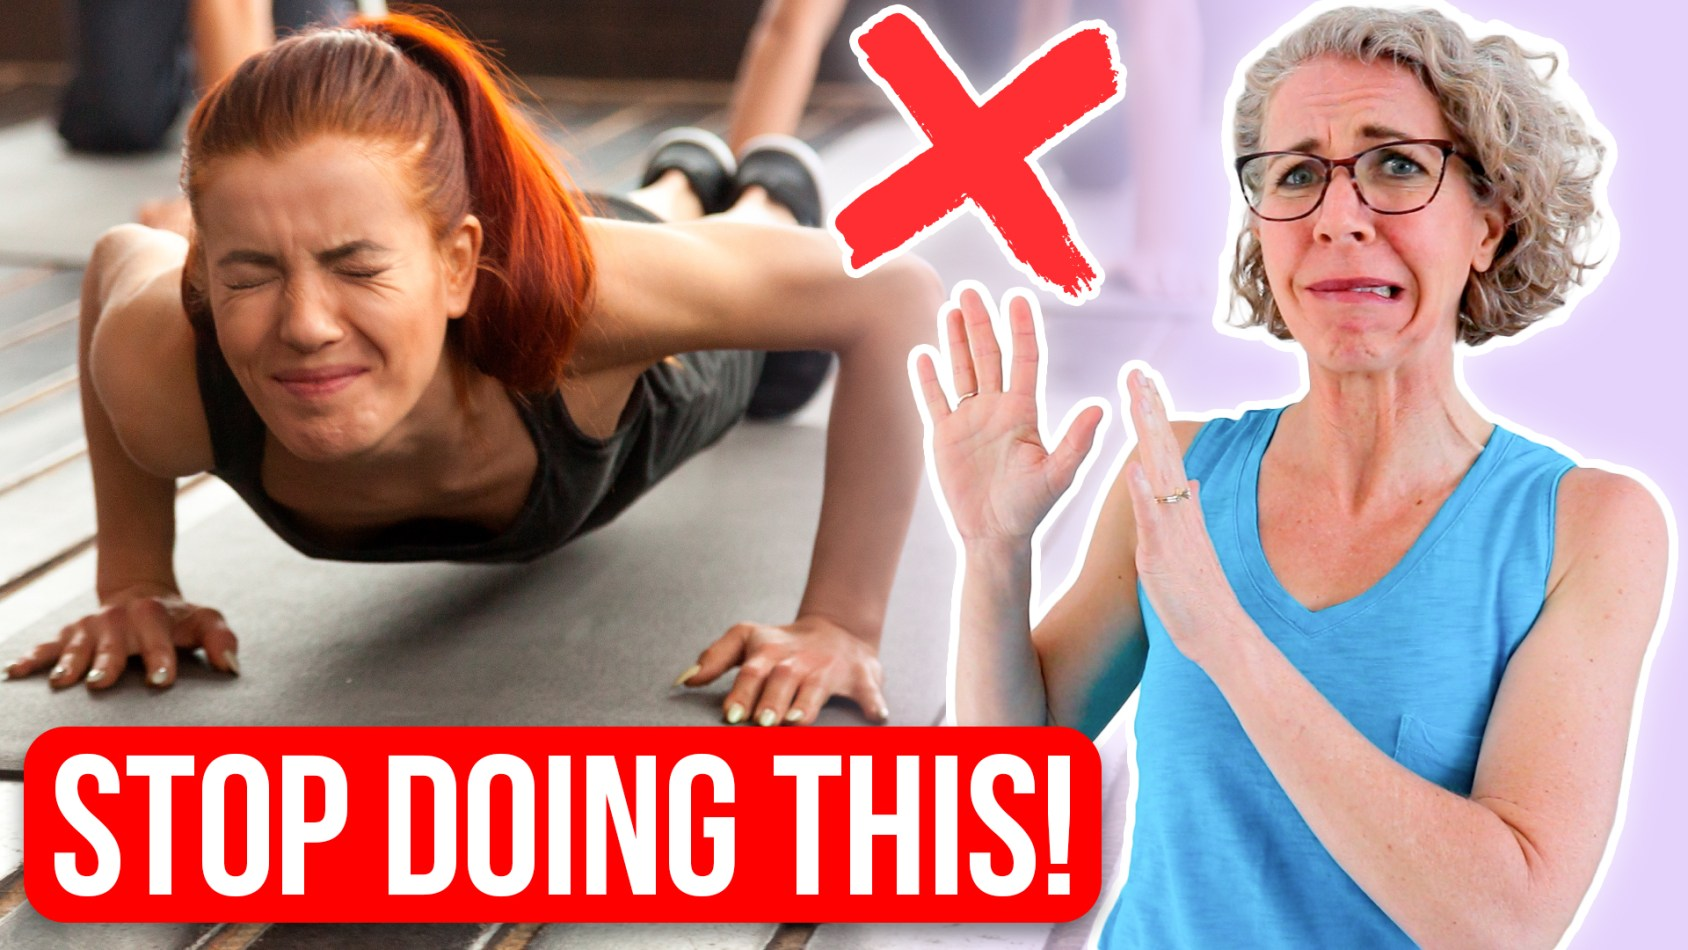 Workouts that are KEEPING YOU from LOSING WEIGHT over 50